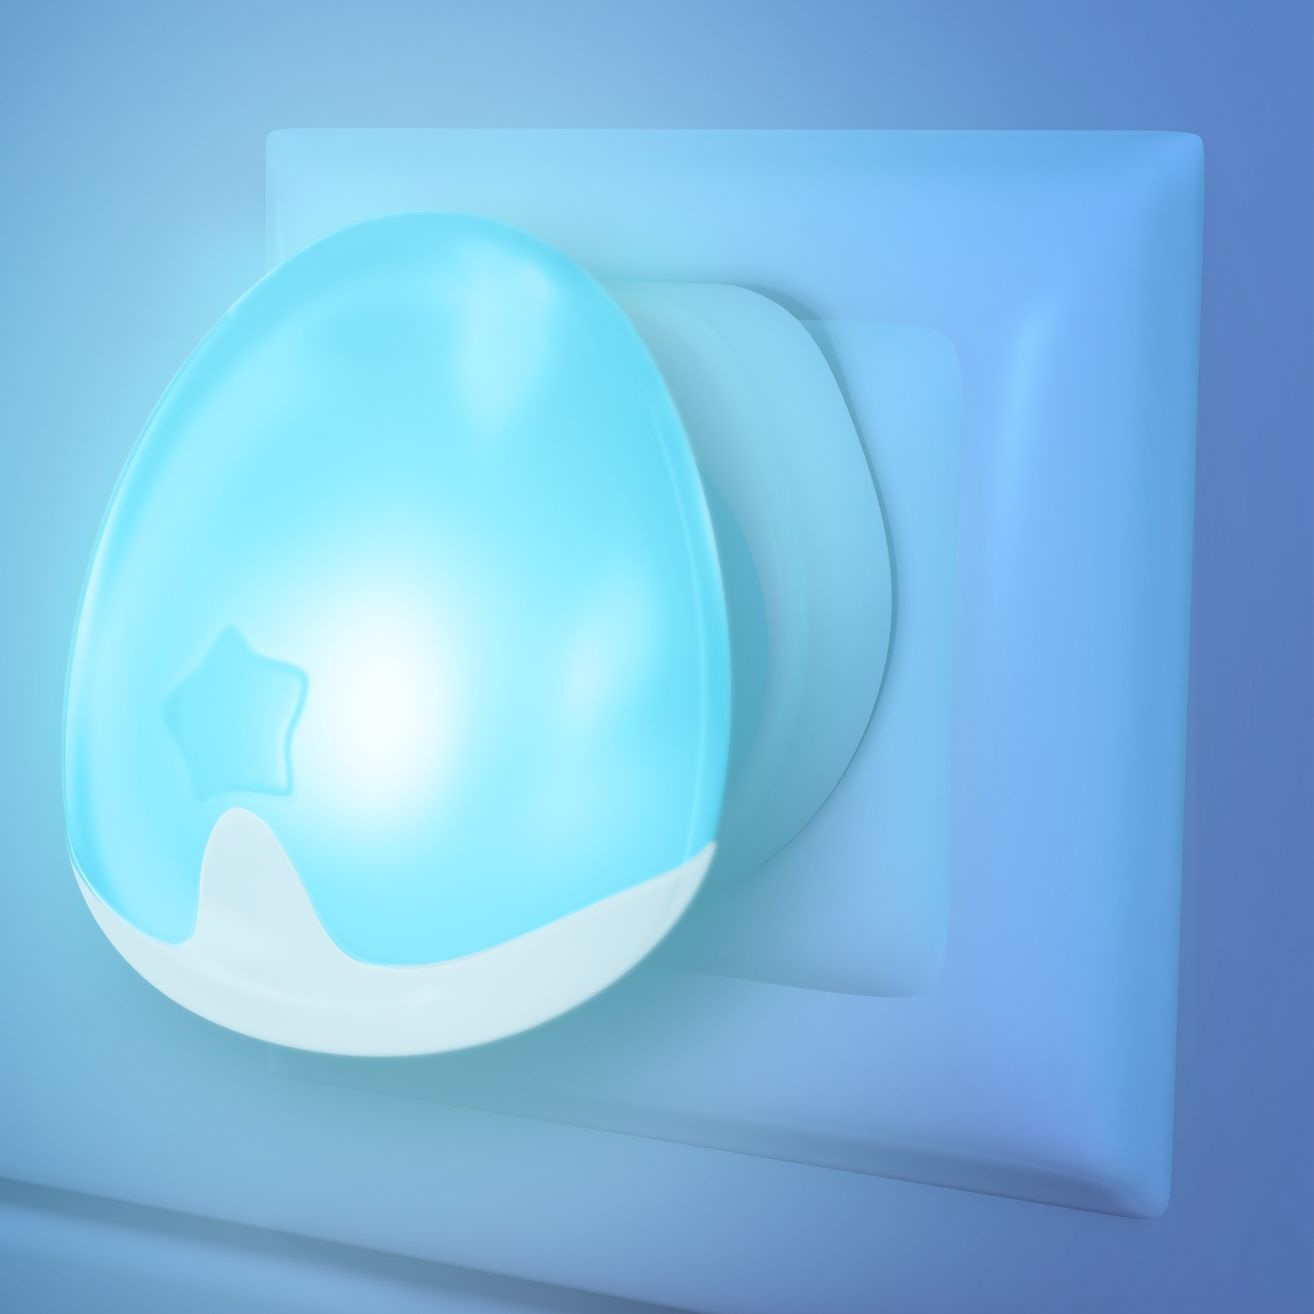 Pabobo Pabobo Night Light, Blue